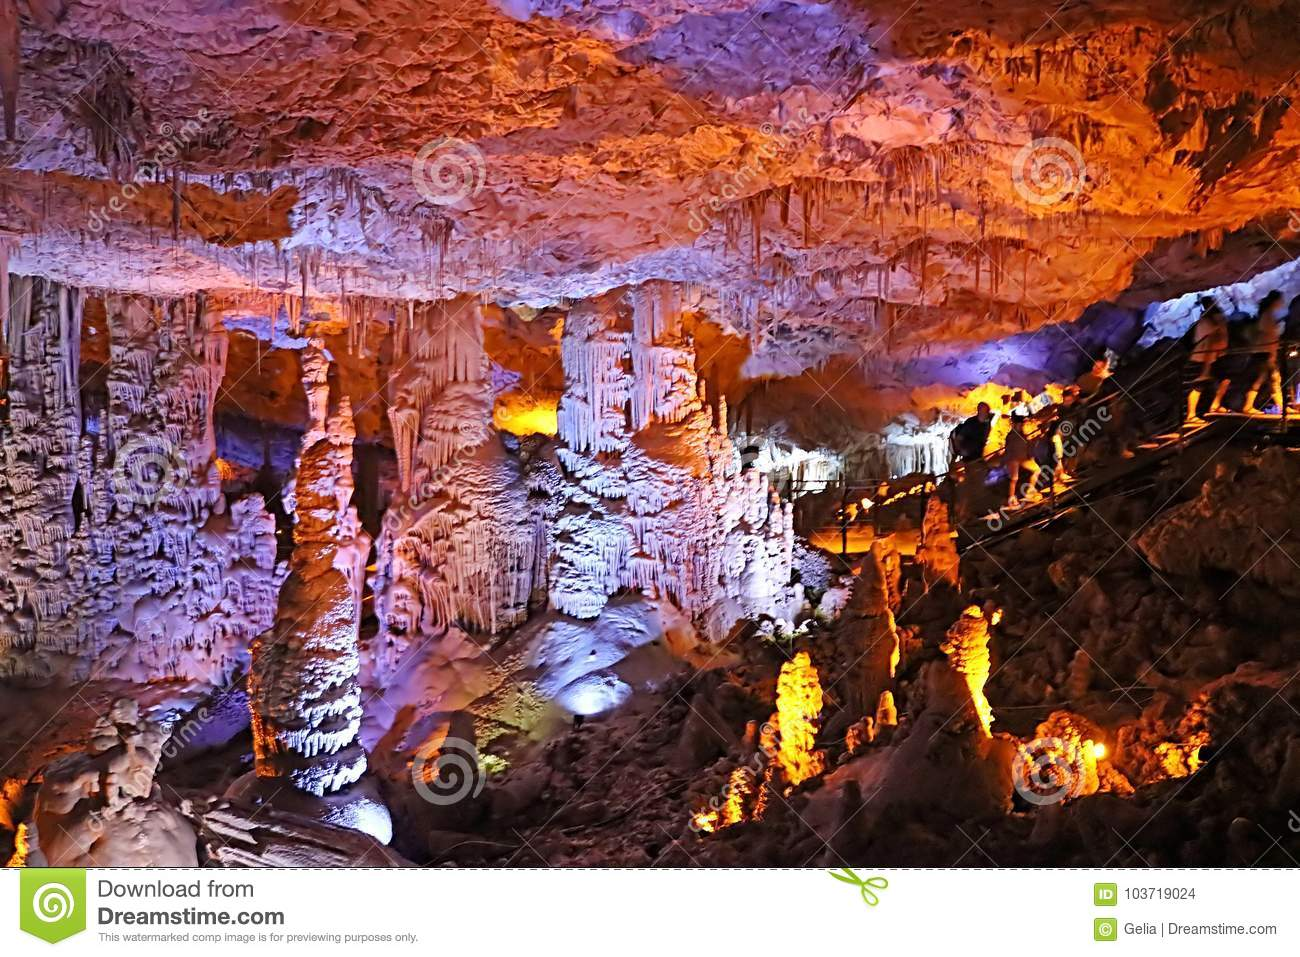 Avshalom Cave, also known as Soreq Cave, a large stalactites cave near Beit-Shemesh